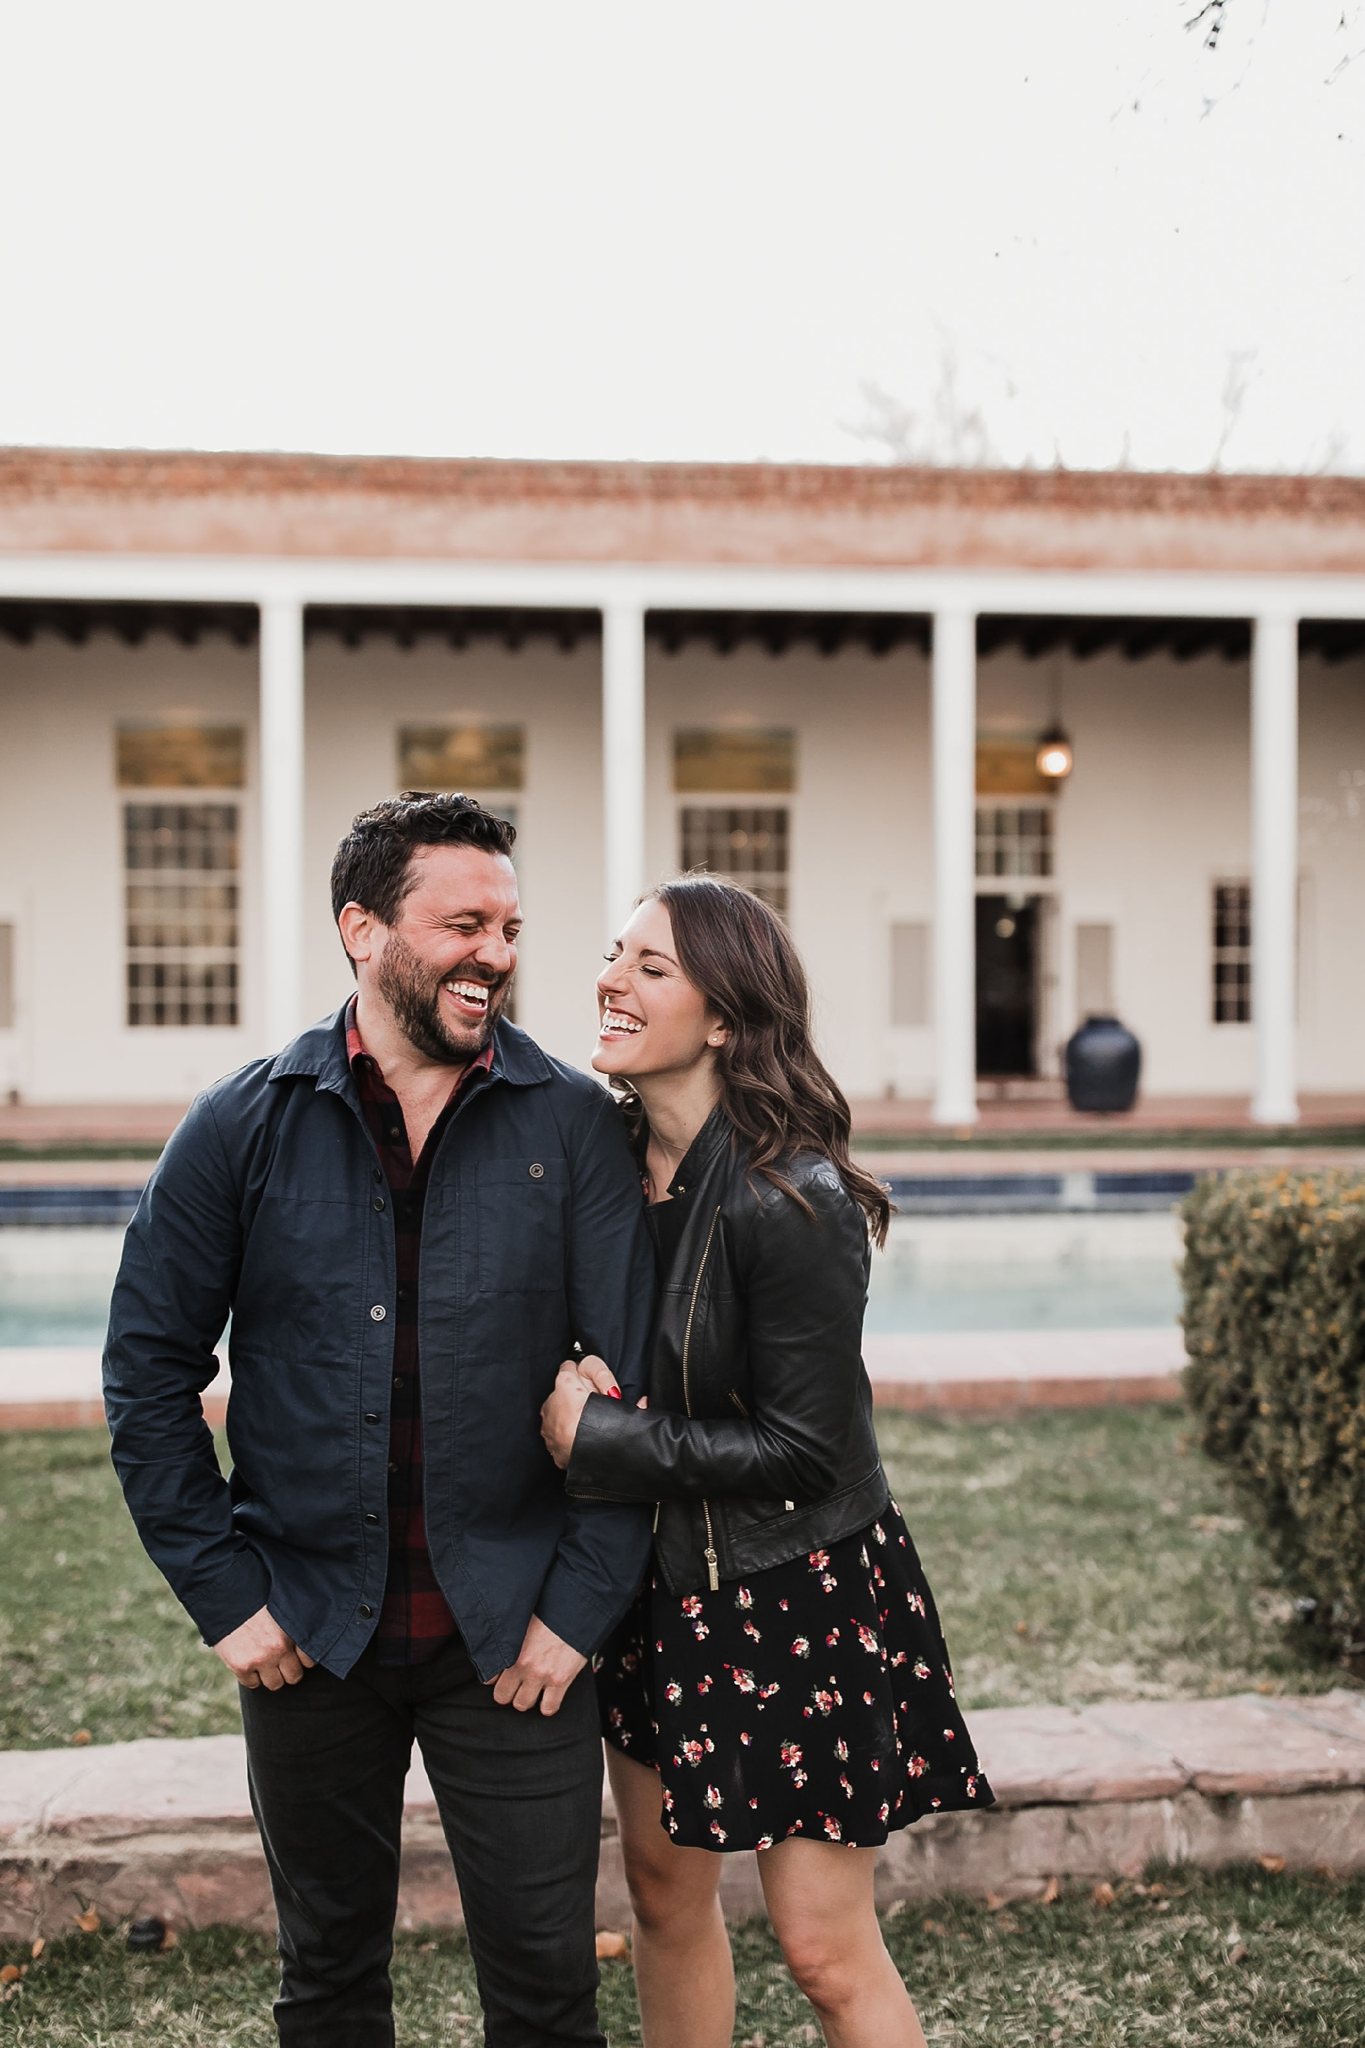 Alicia+lucia+photography+-+albuquerque+wedding+photographer+-+santa+fe+wedding+photography+-+new+mexico+wedding+photographer+-+new+mexico+wedding+-+new+mexico+engagement+-+los+poblanos+engagement+-+los+poblanos+wedding+-+fall+wedding_0027.jpg